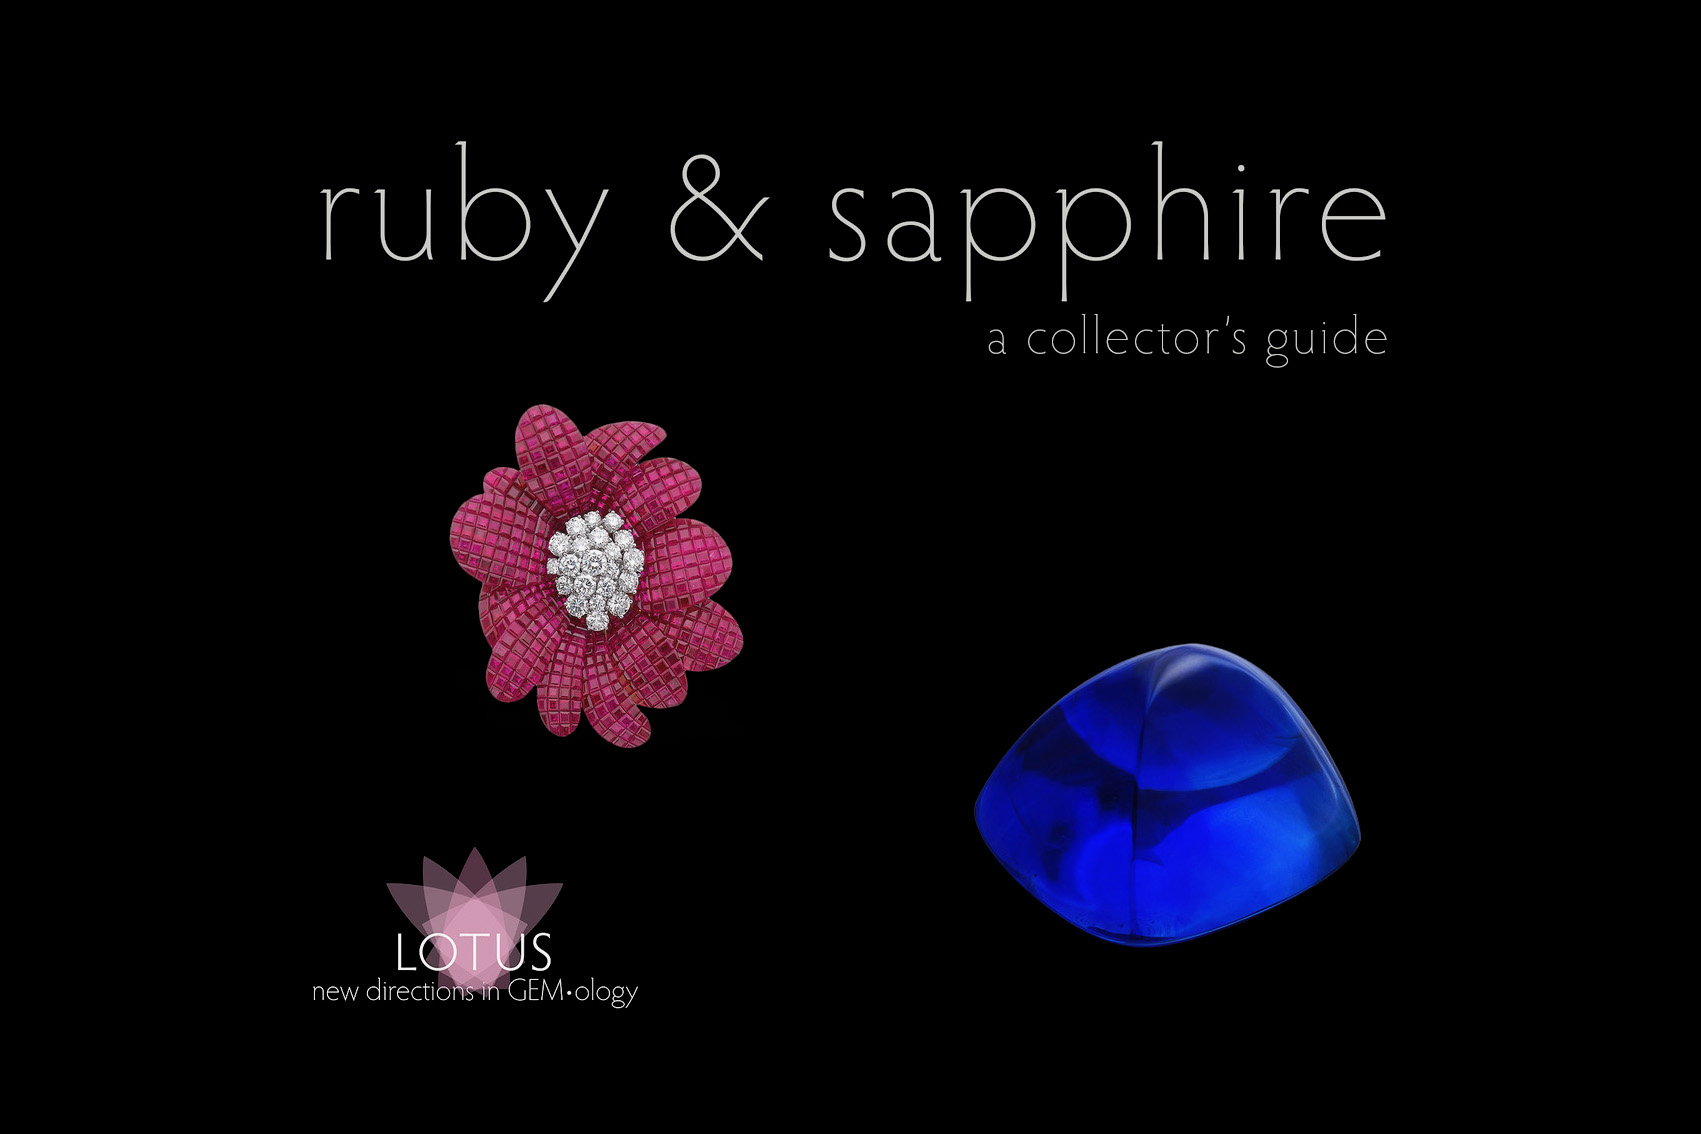 Ruby & Sapphire: A Collector's Guide